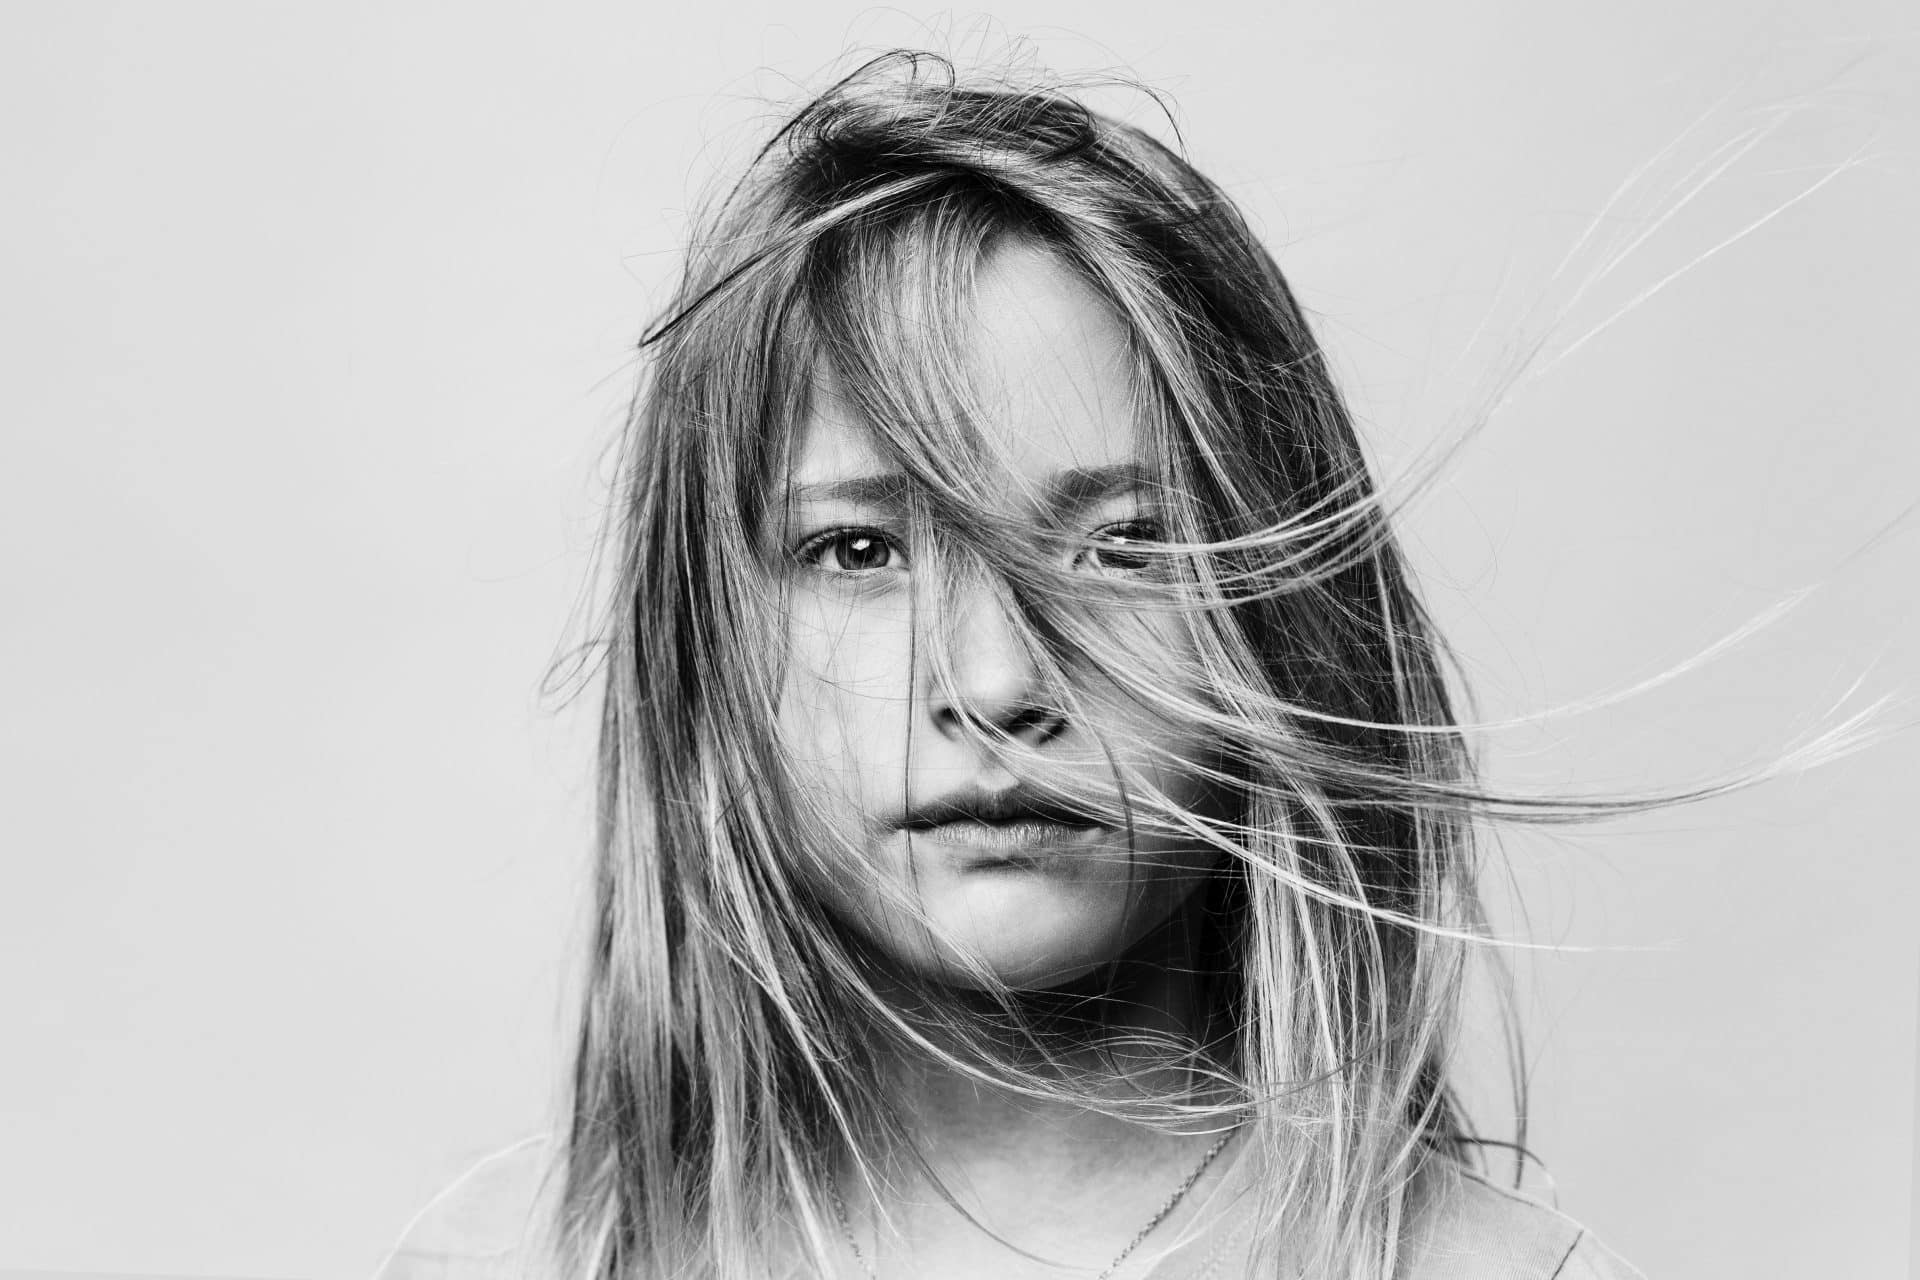 Mike Mielcarz professional photographer little girl stoic gray portrait messy hair child creative repute